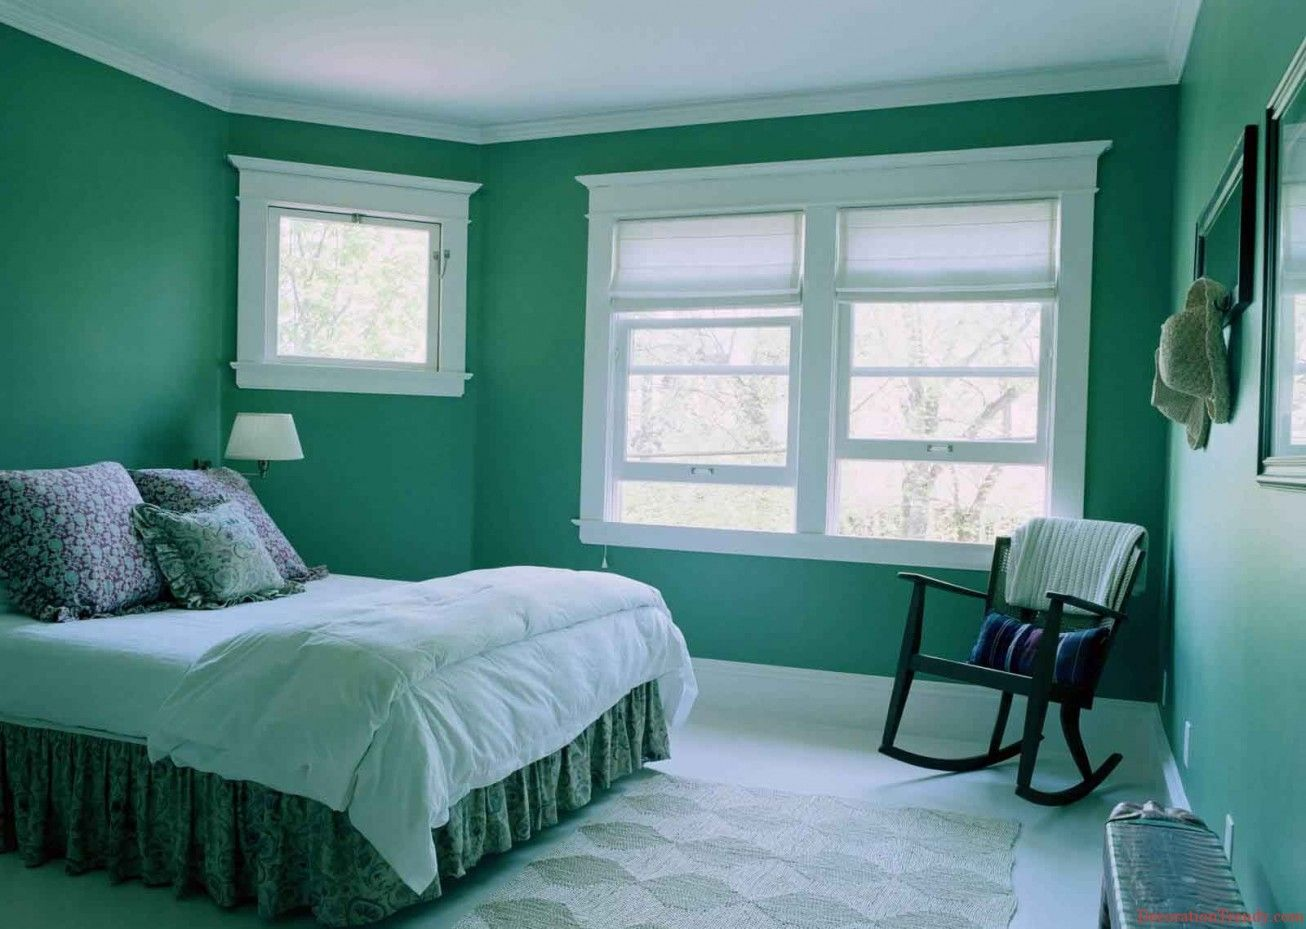 Wall Colour Inspiration: Drop-Dead Gorgeous And Perfect Color For Bedroom: Exciting